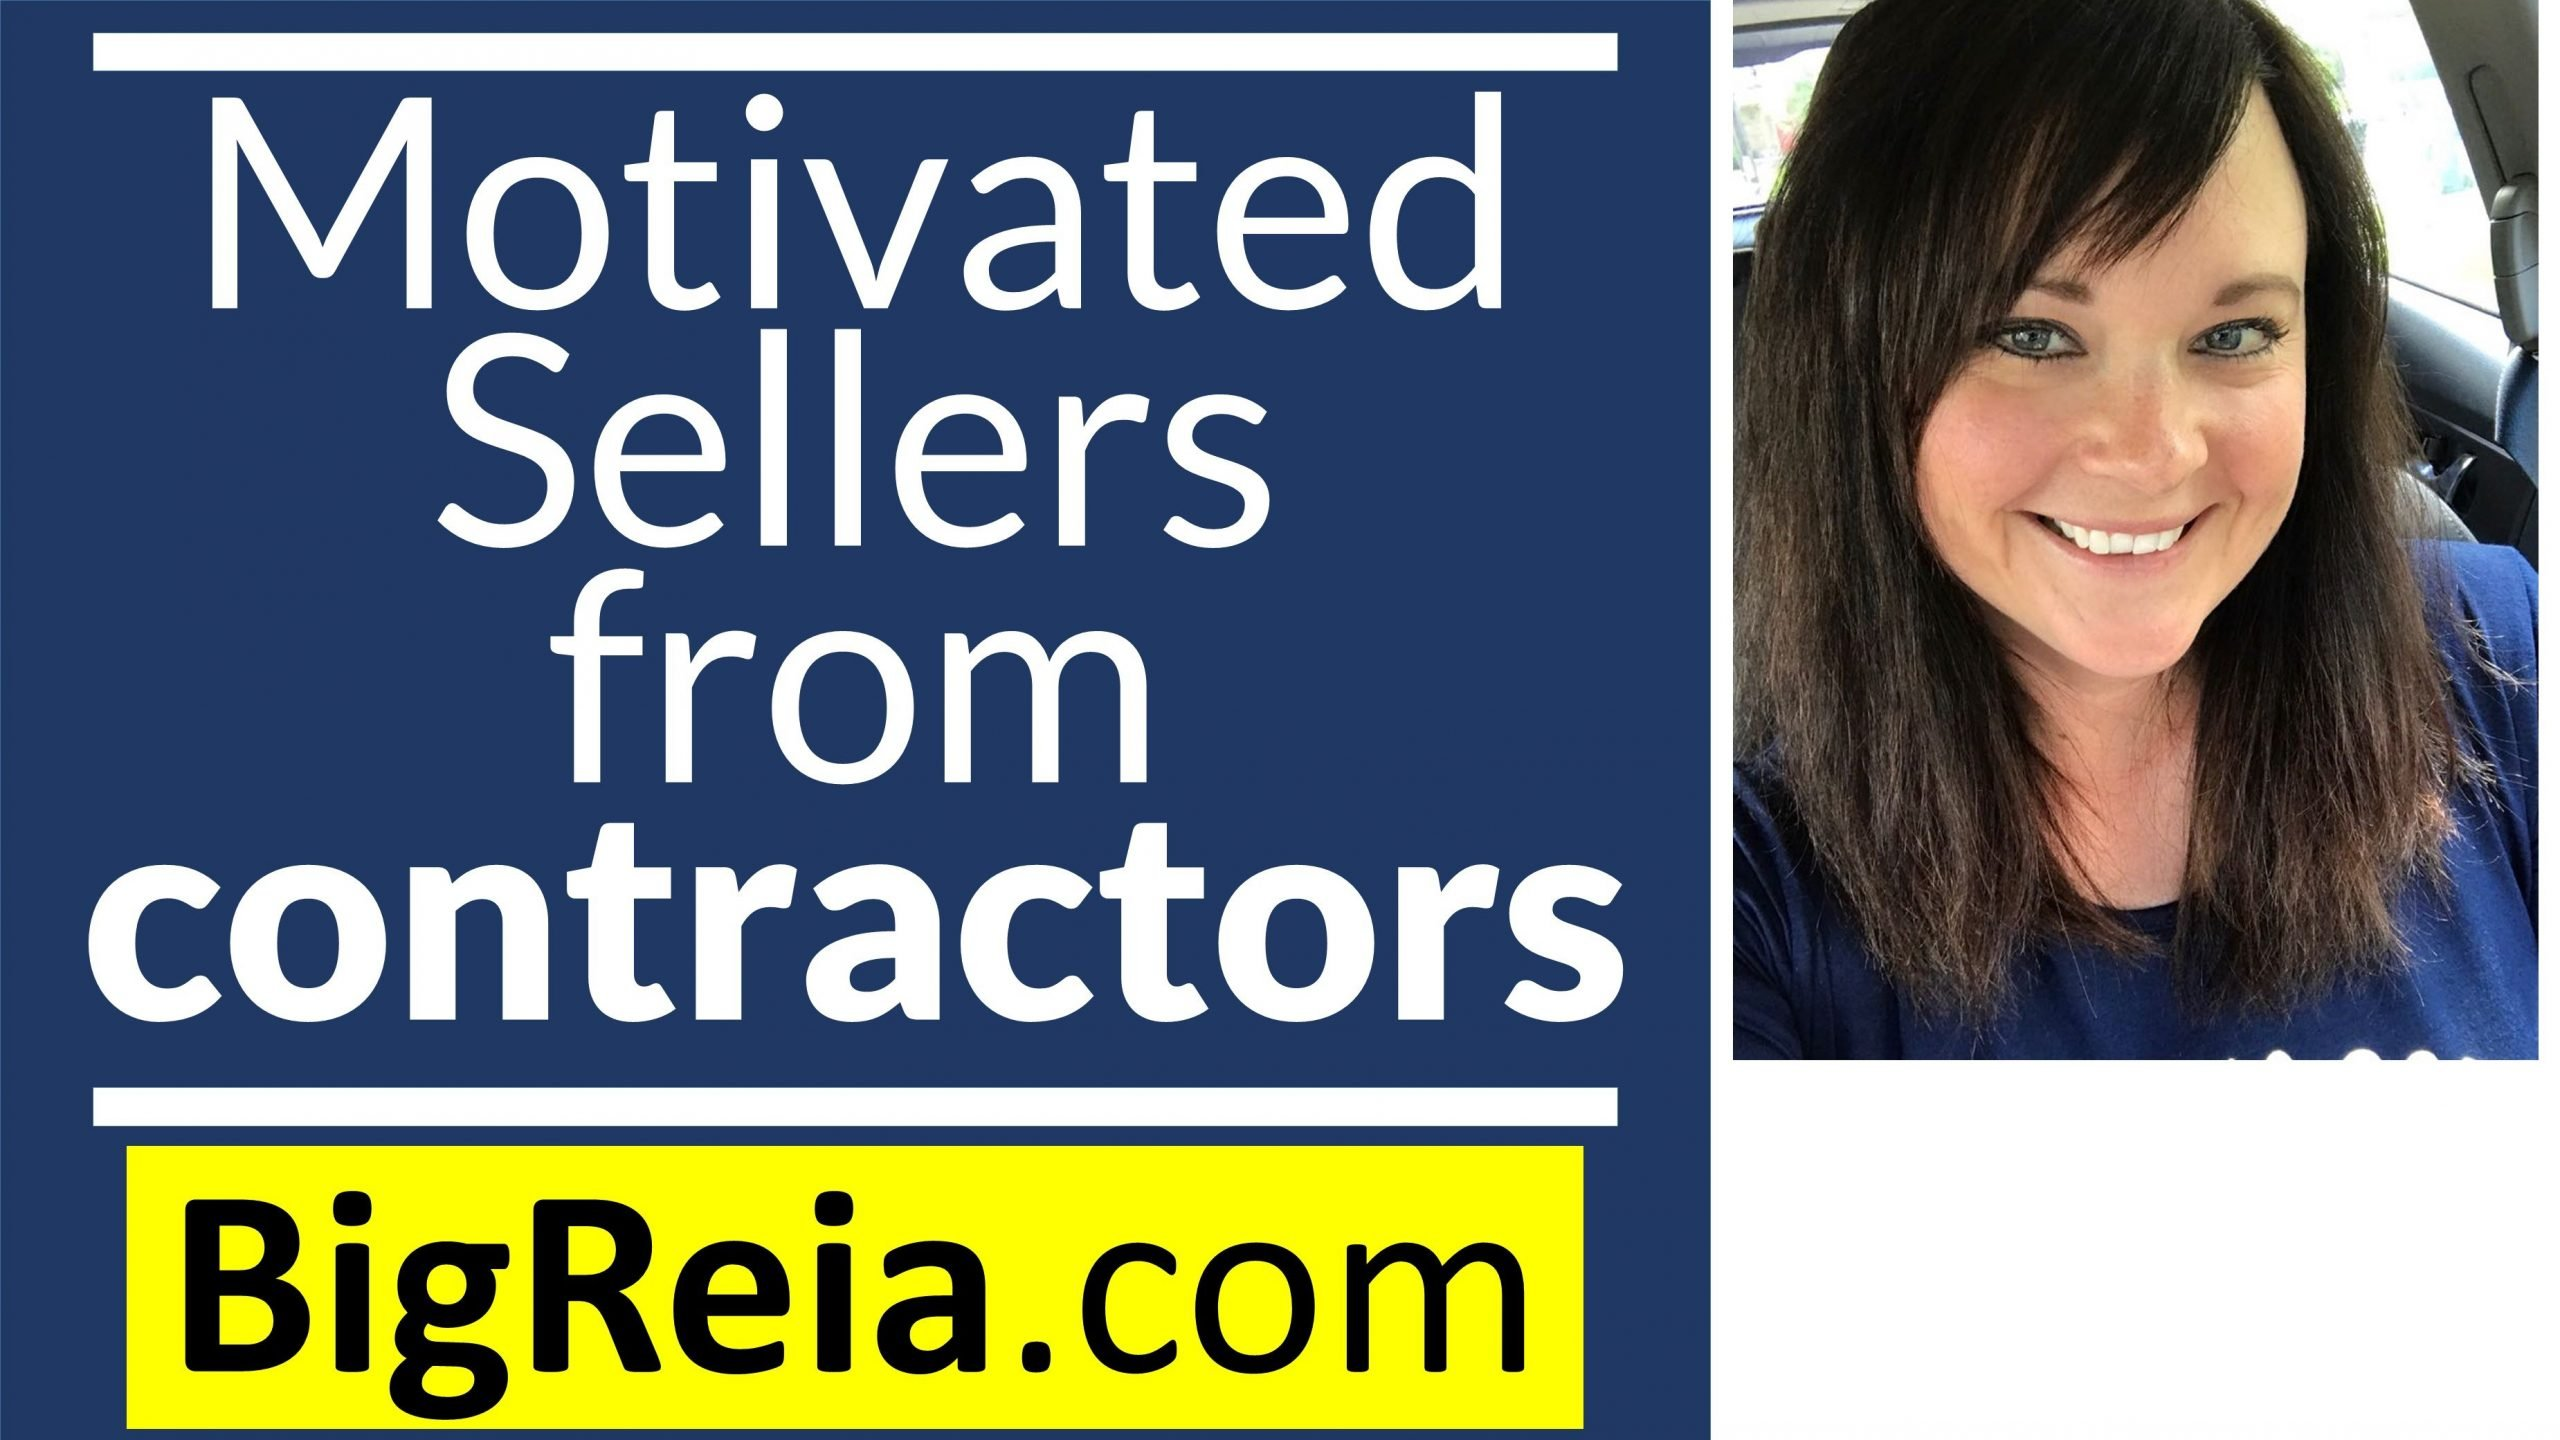 How to get motivated sellers from contractors, trucker makes extra $2,000/week